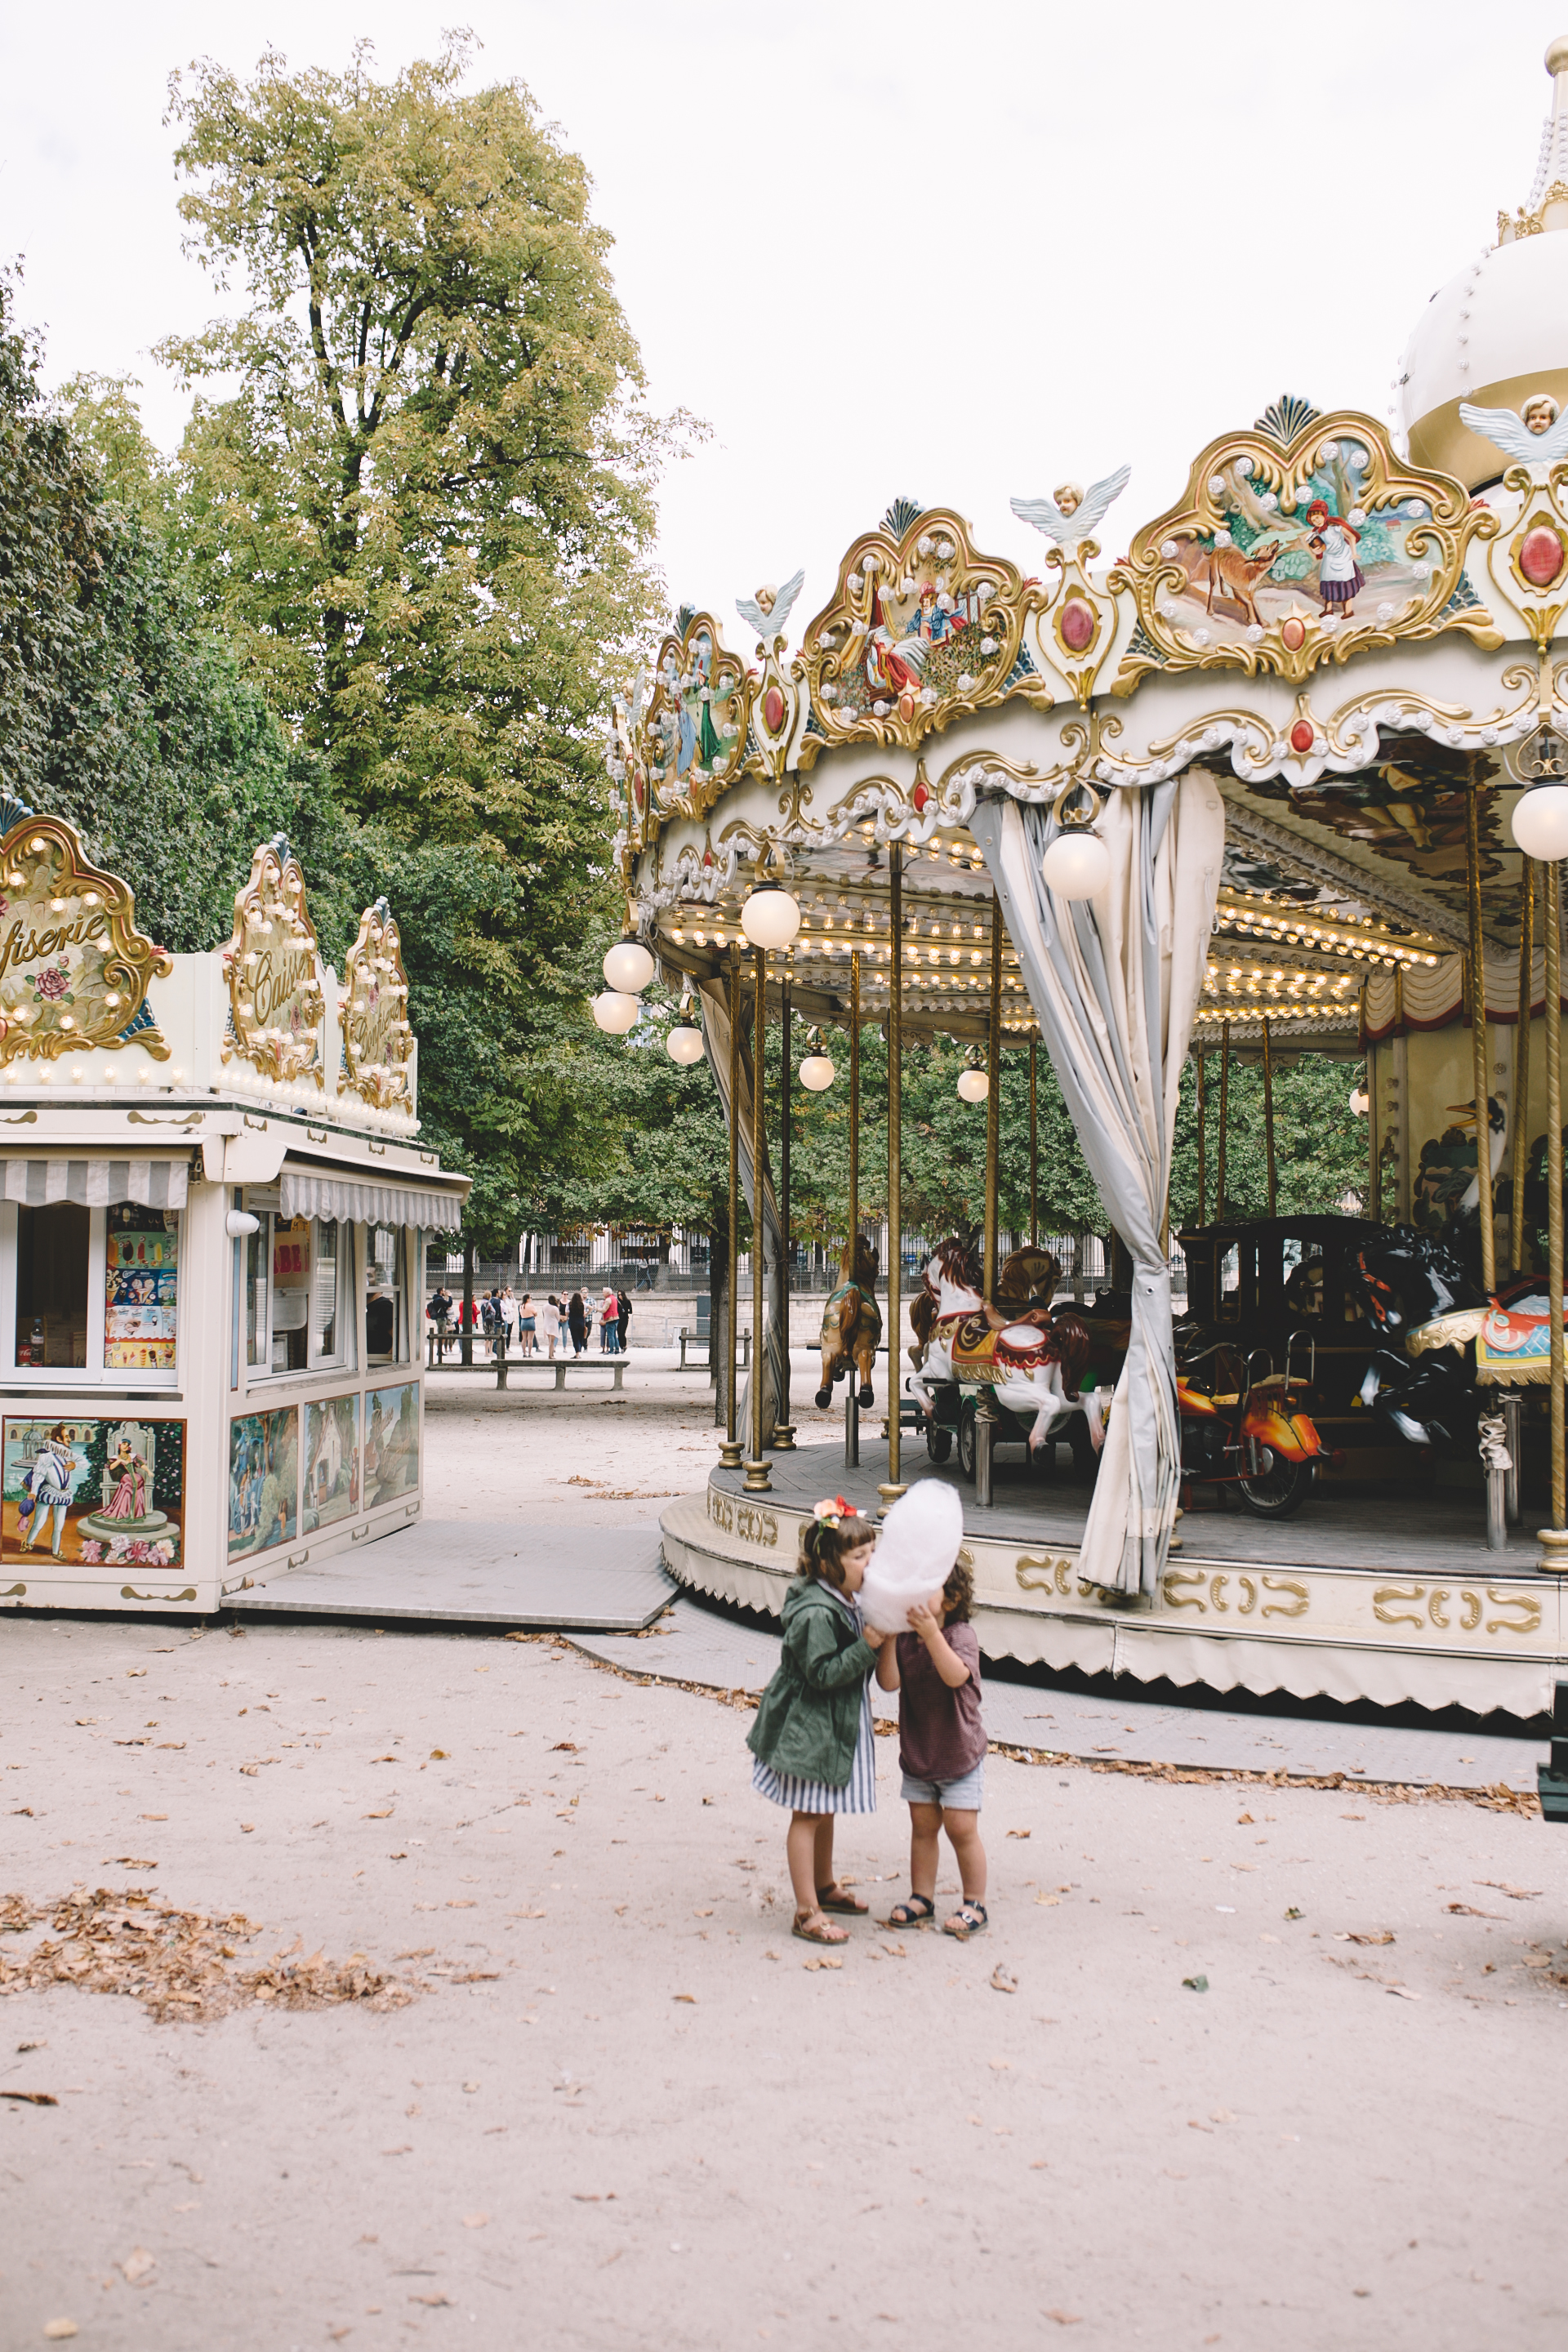 Jardin des Tuileries Paris France Carousel  (3 of 7).jpg